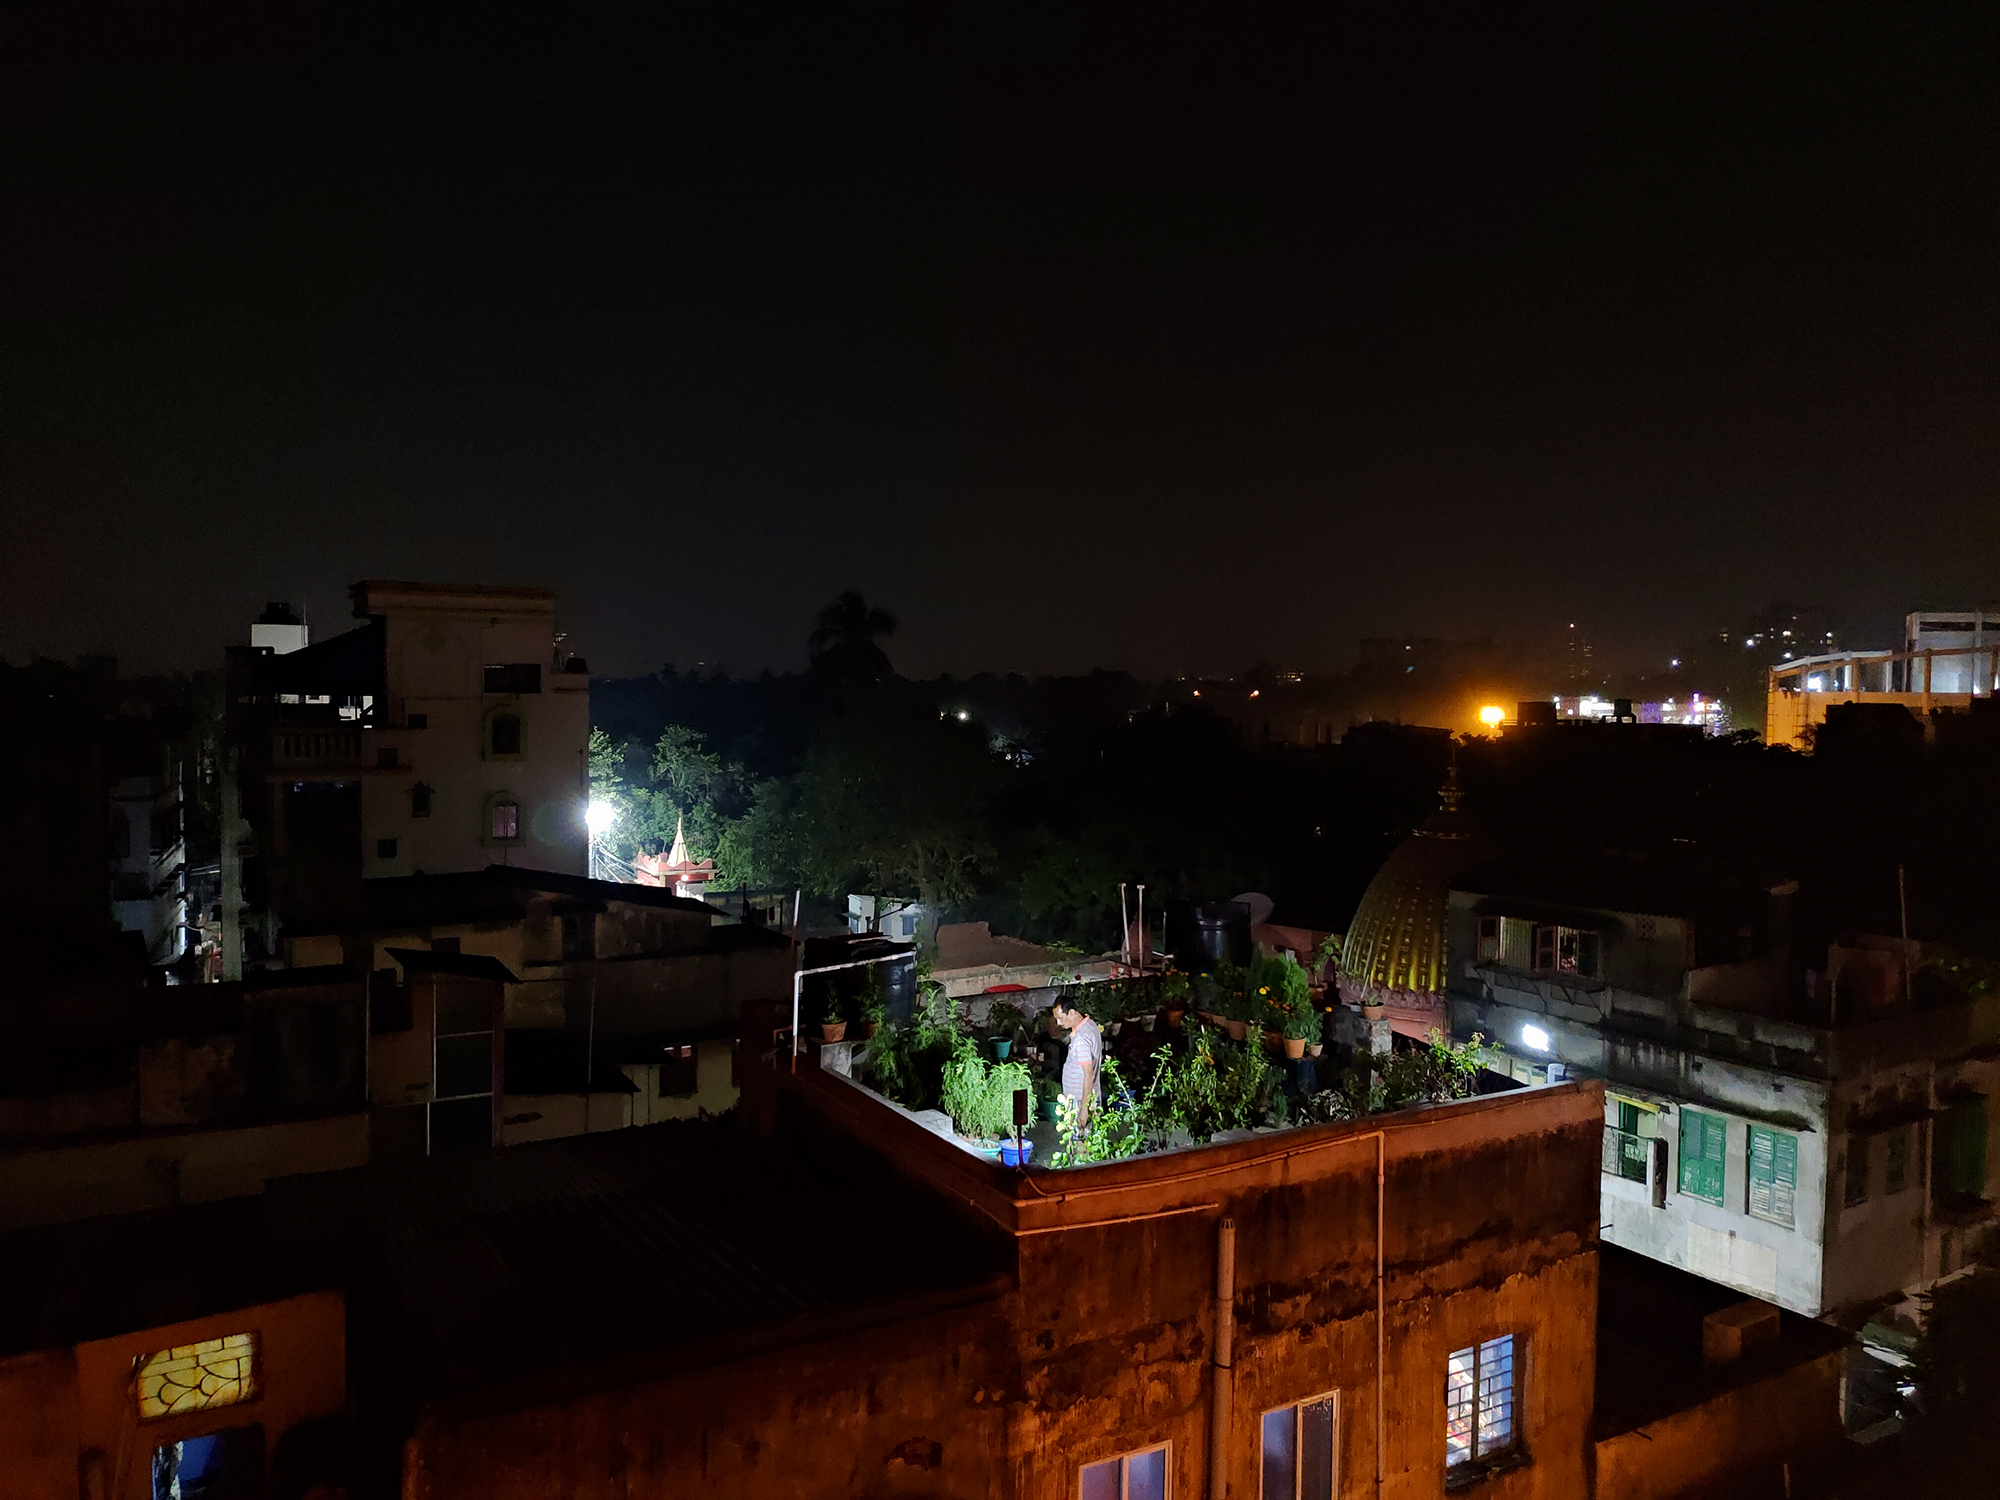 Saw this man watering his plants at night while I was covering a wedding assignment